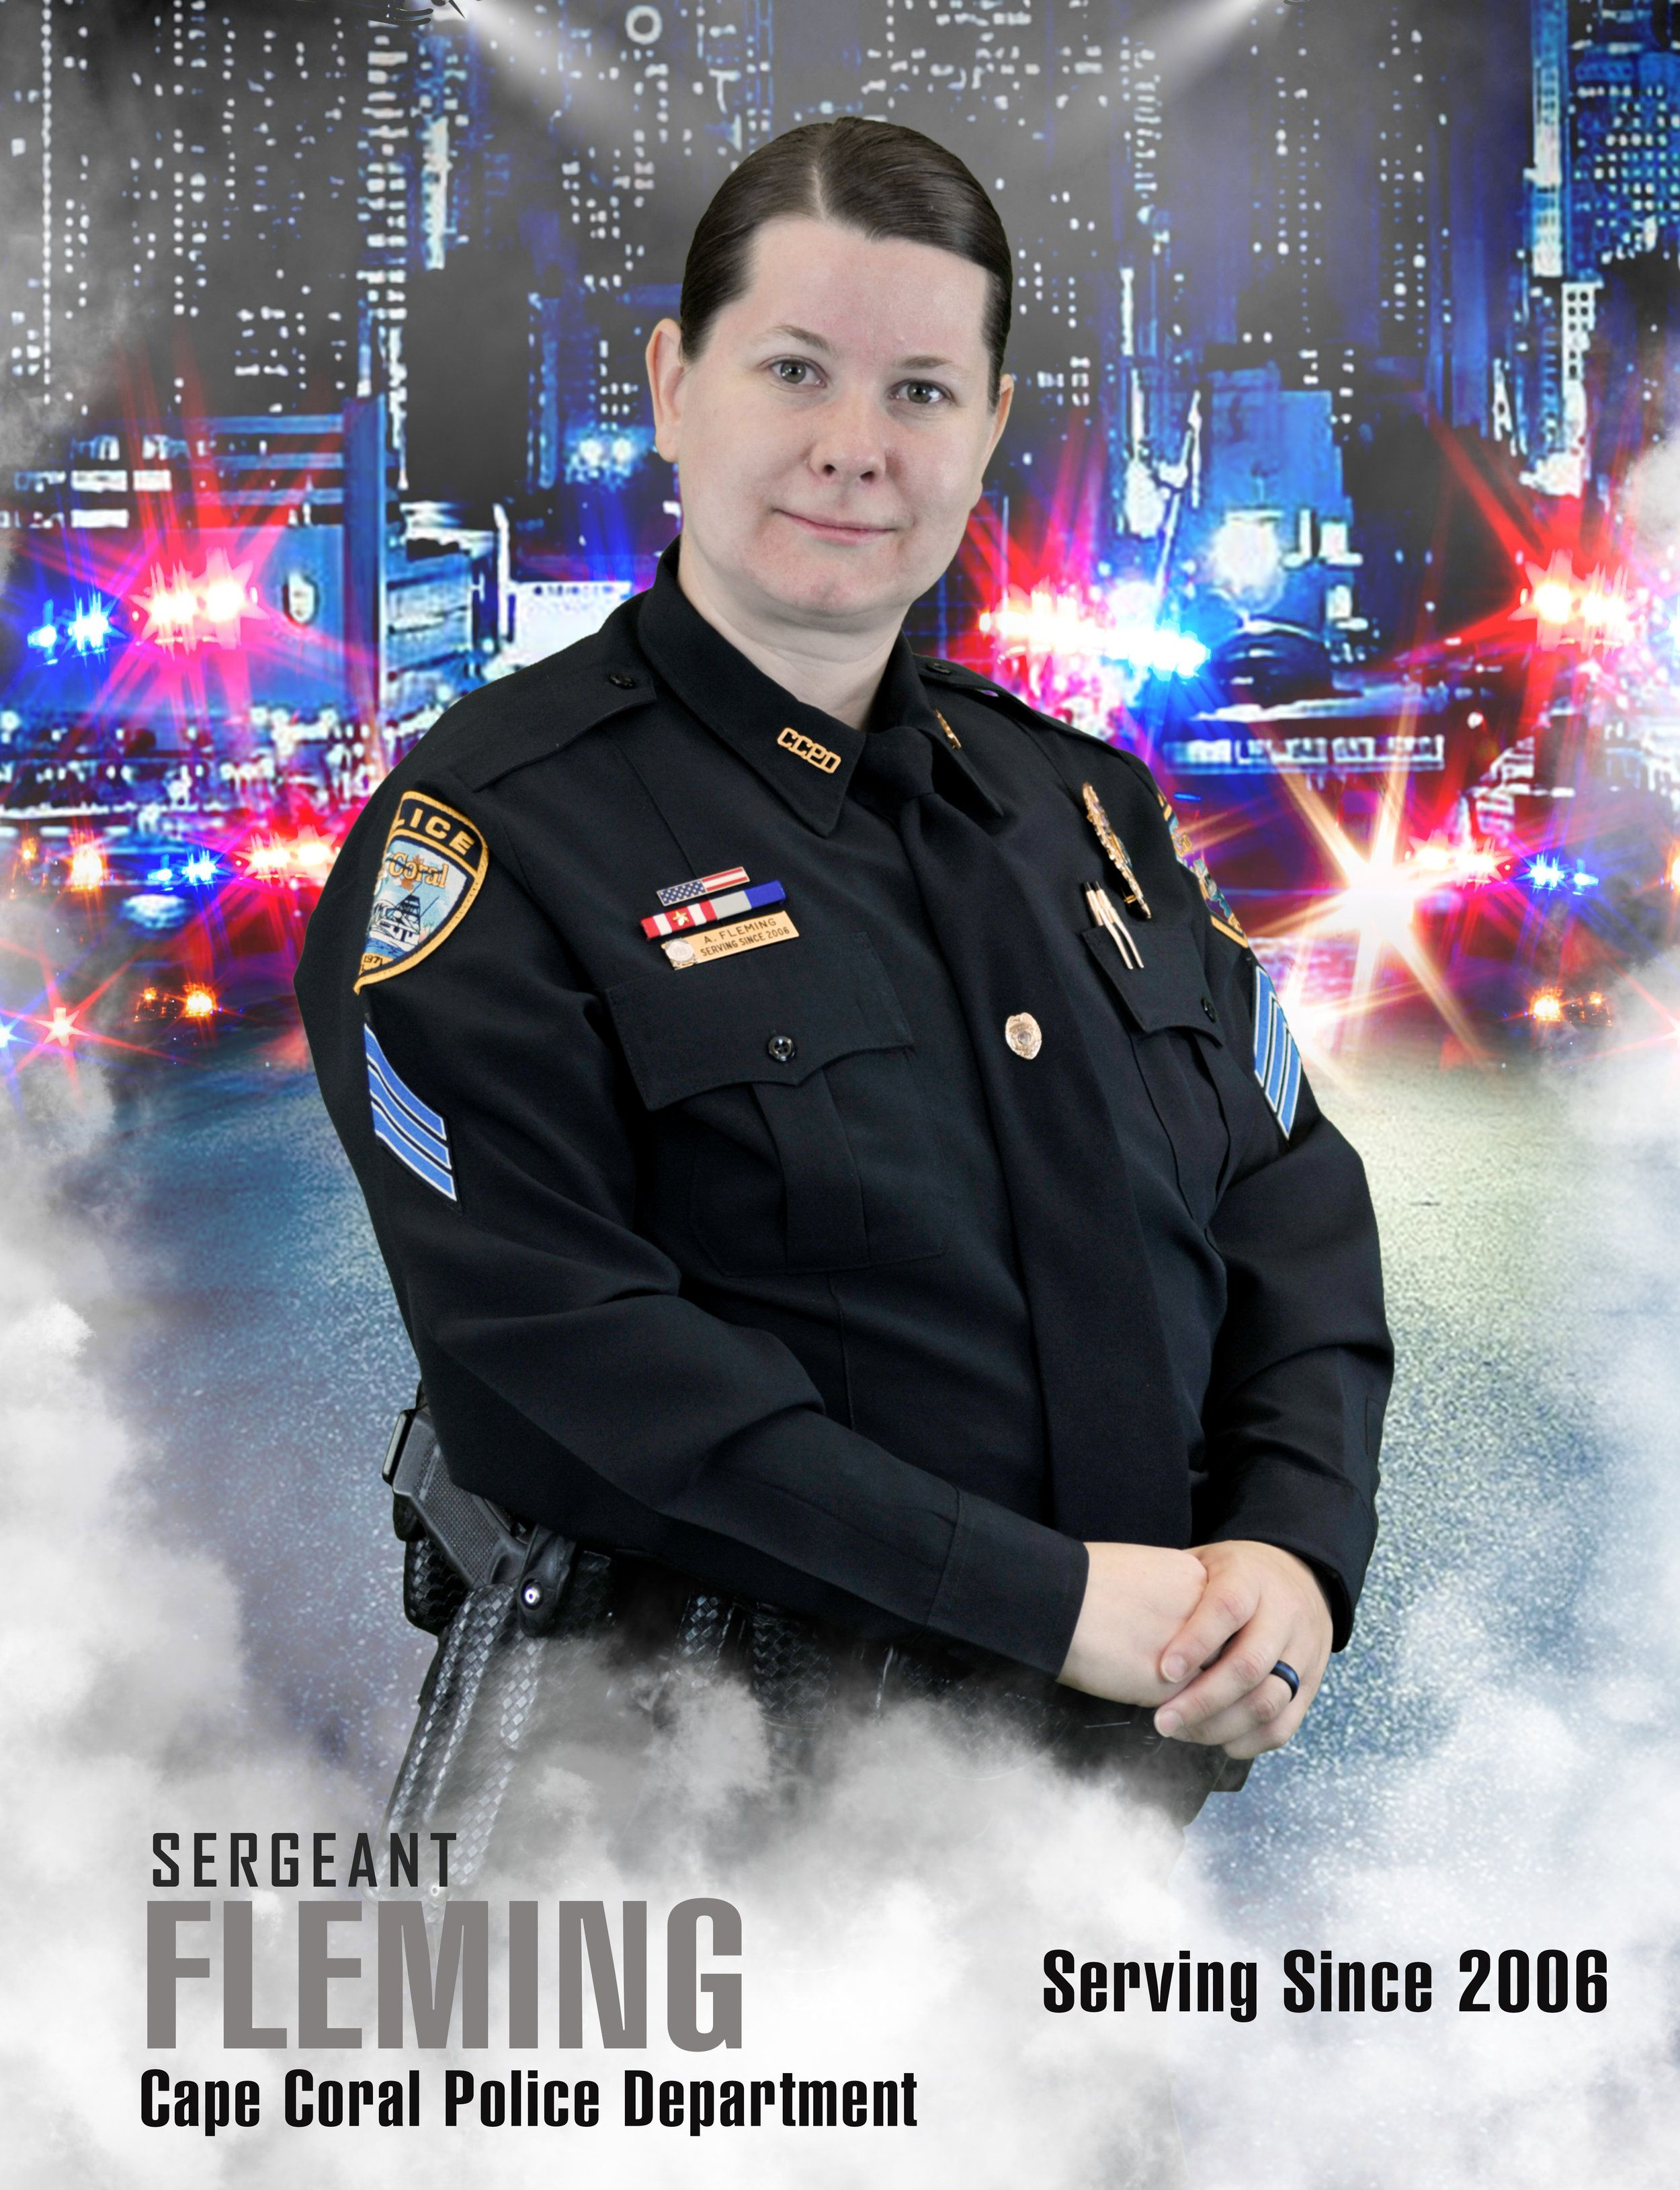 Women S History Month Sergeant Angela Fleming Cape Coral Police Department Women In History Womens History Month Police Department